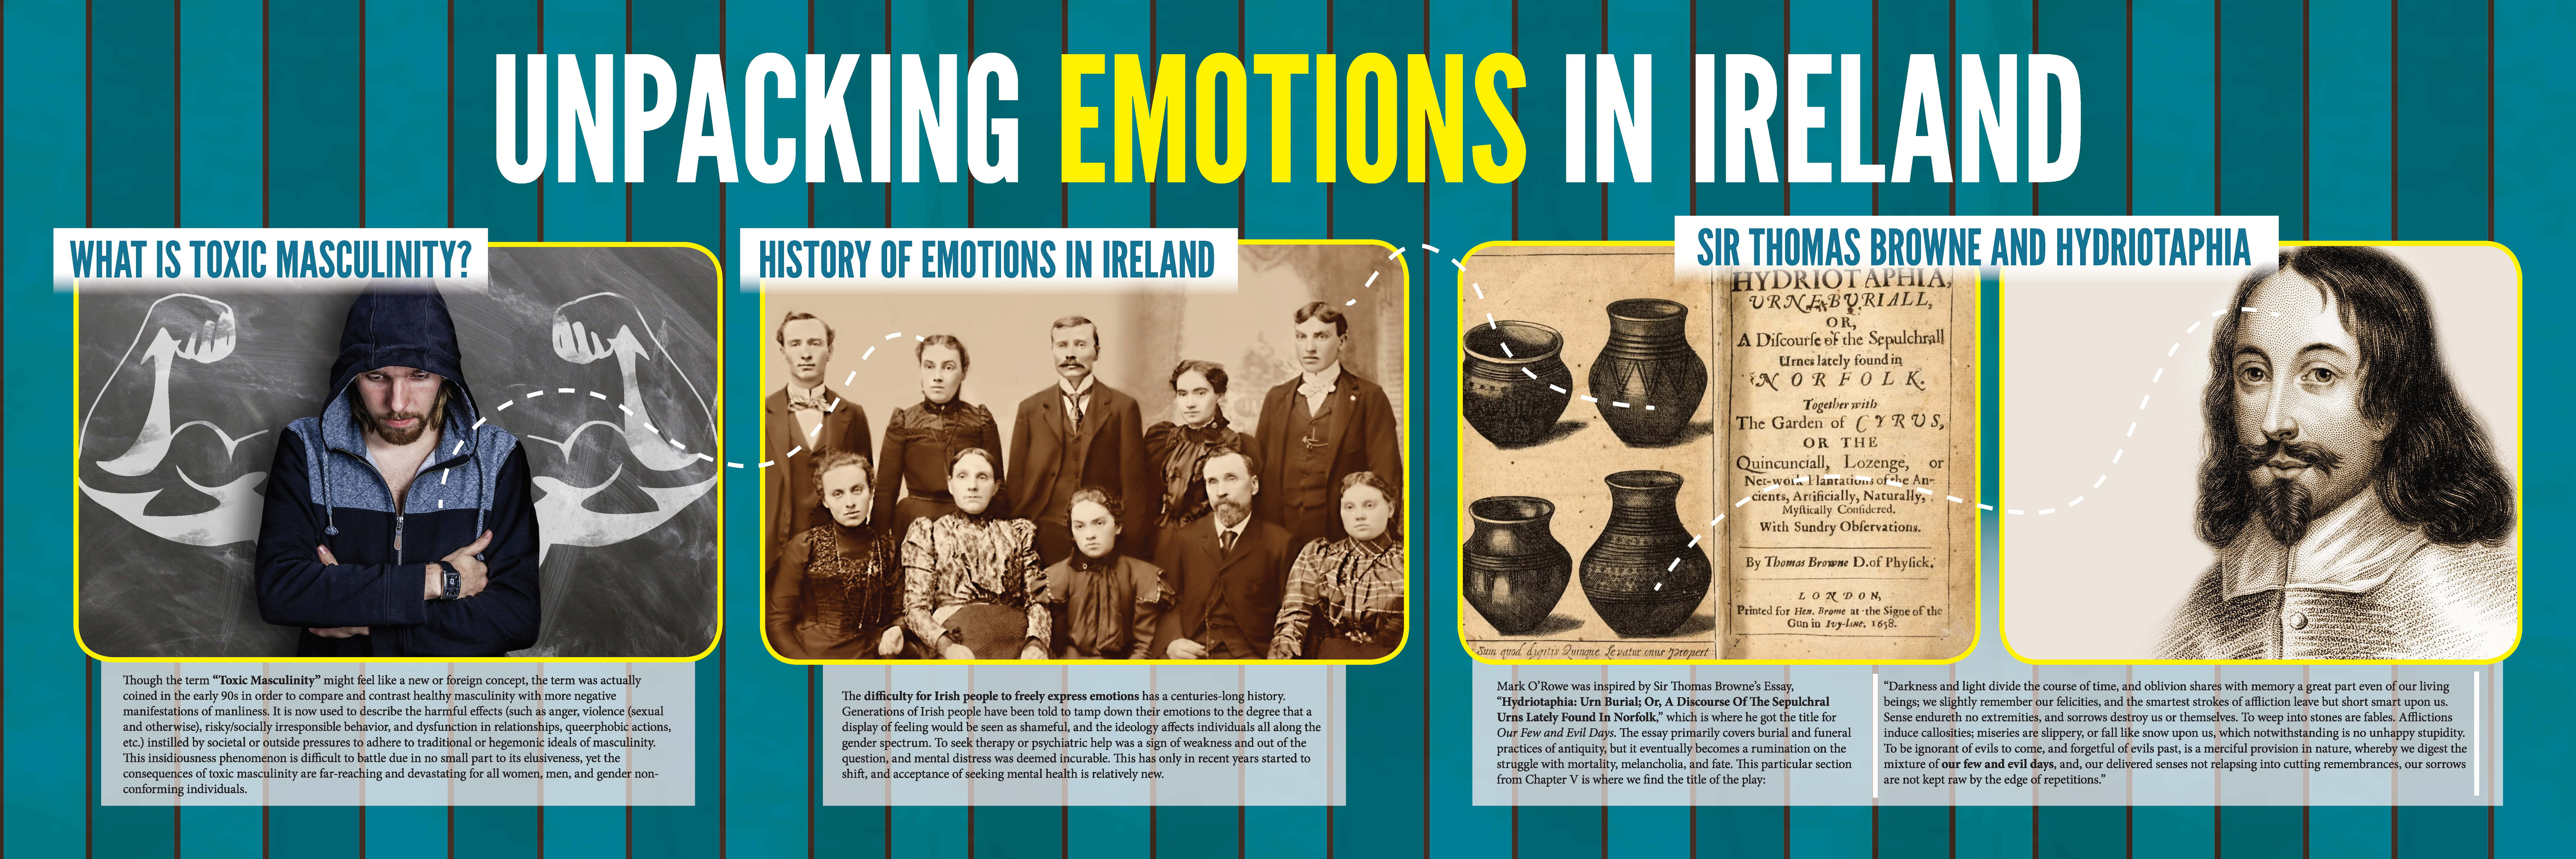 Unpacking Emotions in Ireland Infographic